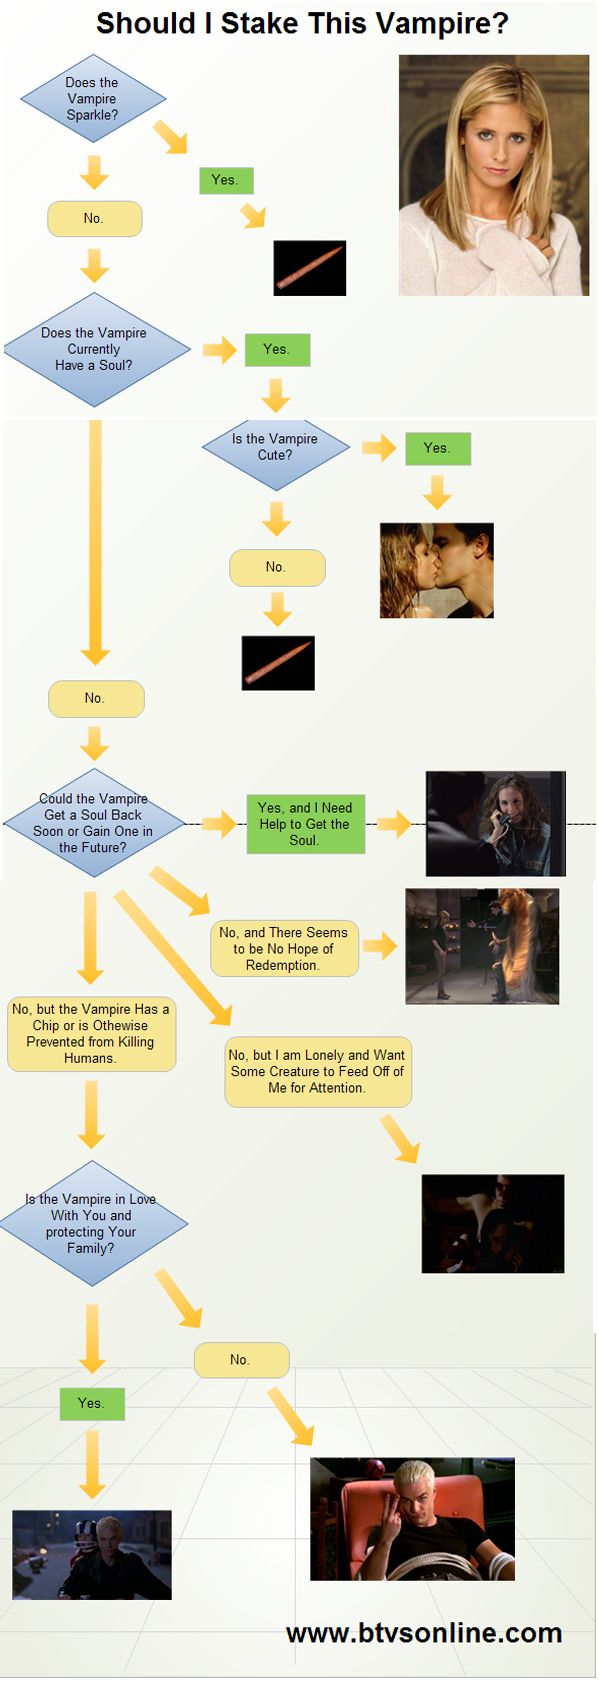 If you run into a vampire at night, here is a handy flowchart to tell you what to do -- stake it, capture it, or perhaps something else? By www.btvsonline.com